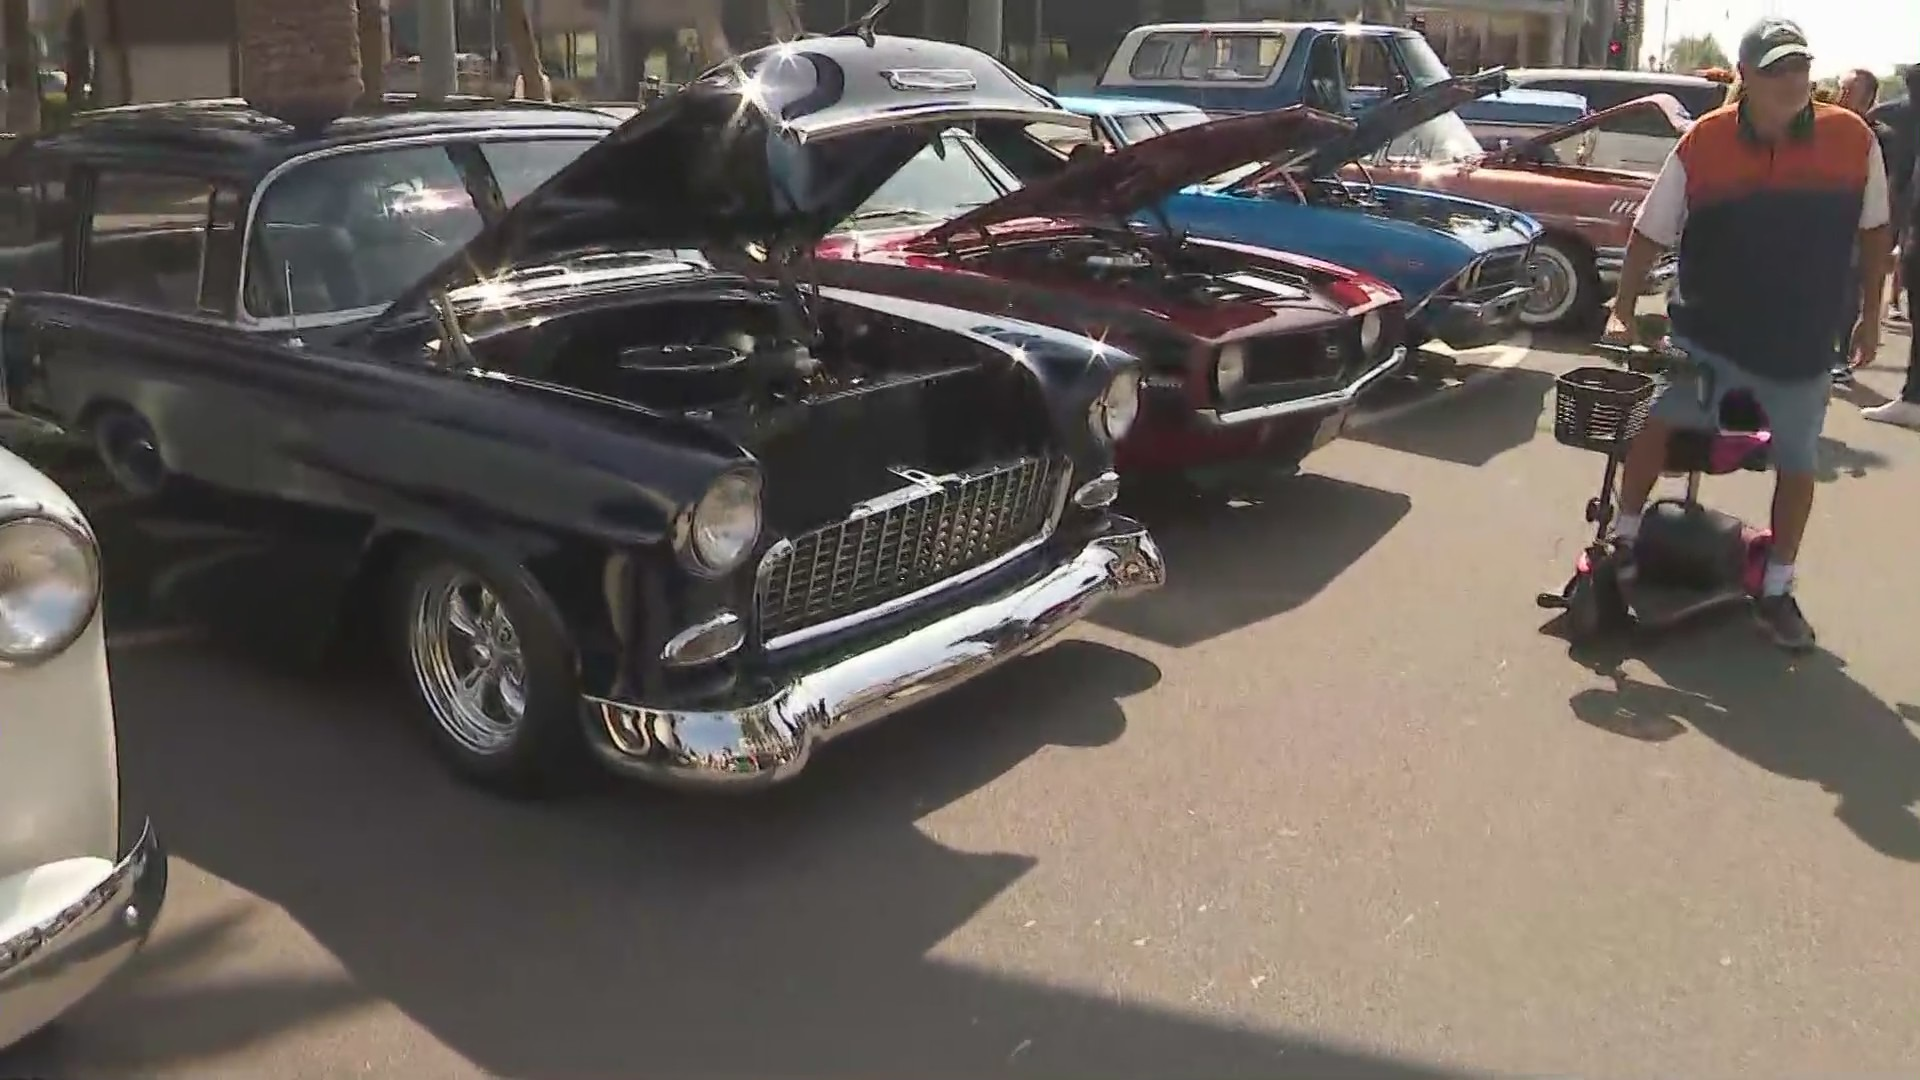 SoCal's hottest vintage and modern cars once again lined the streets of downtown Brea in celebration of Father's Day on June 20, 2021.